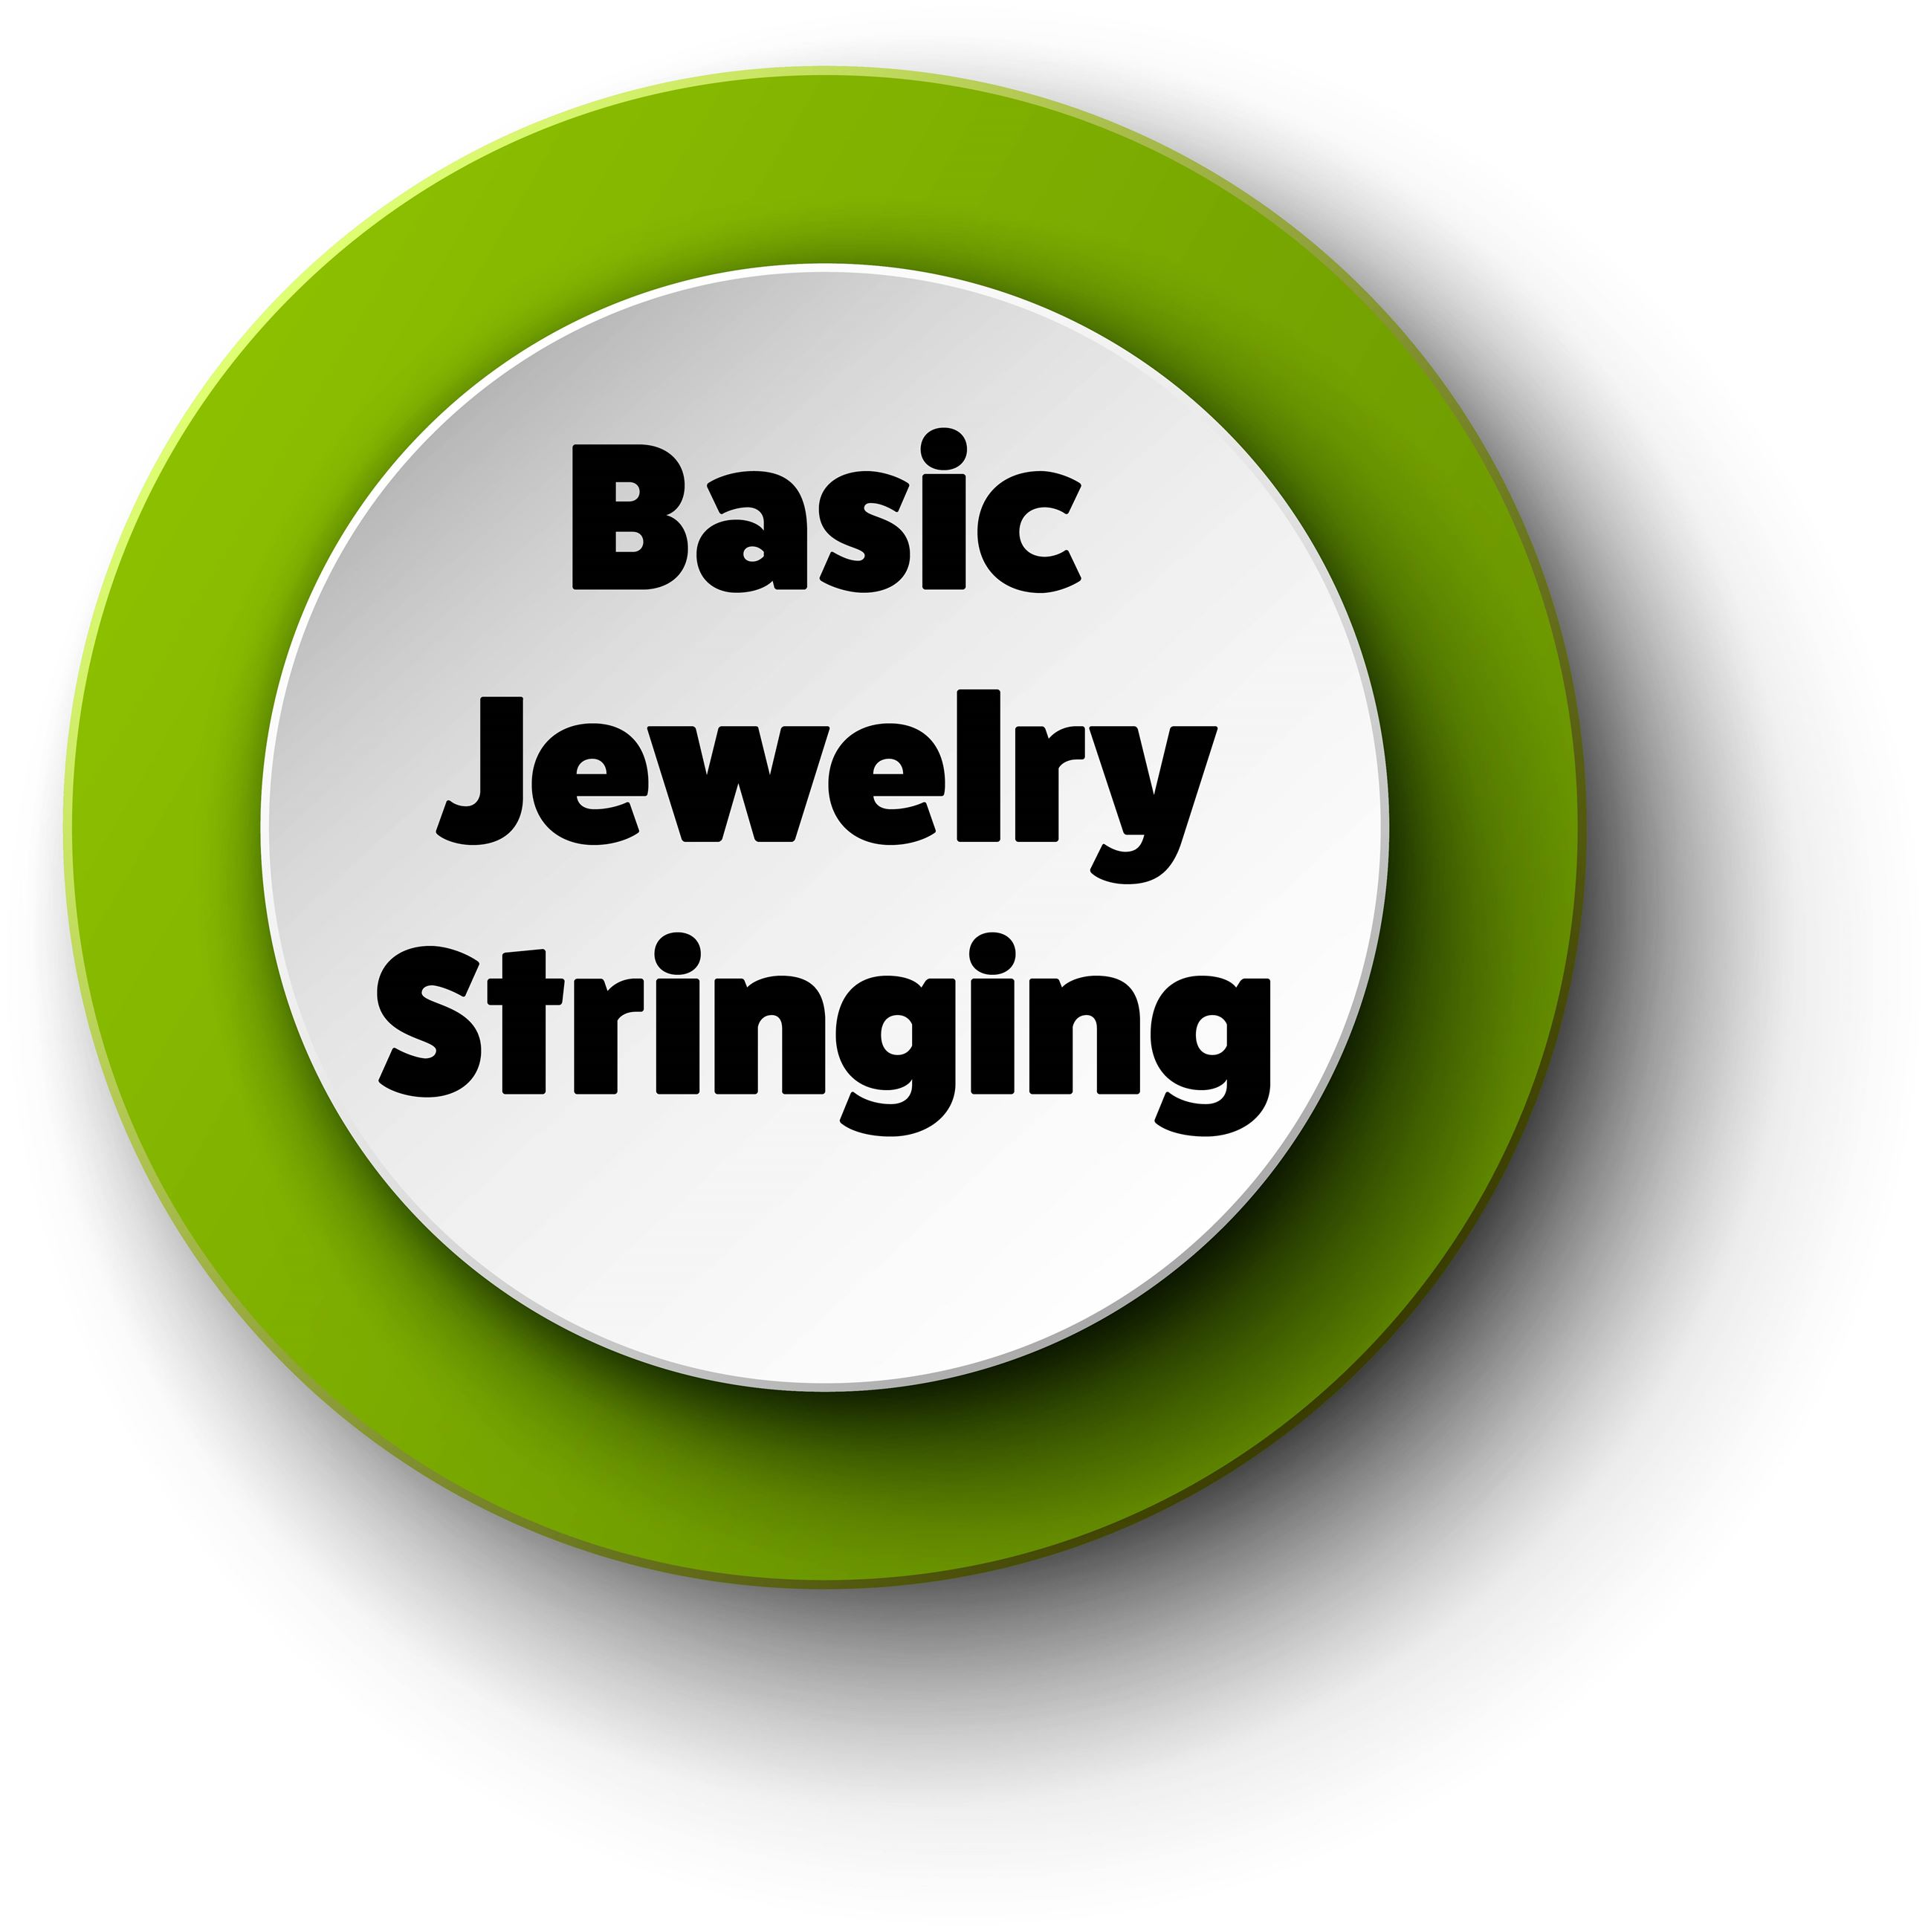 Basic Jewelry Stringing